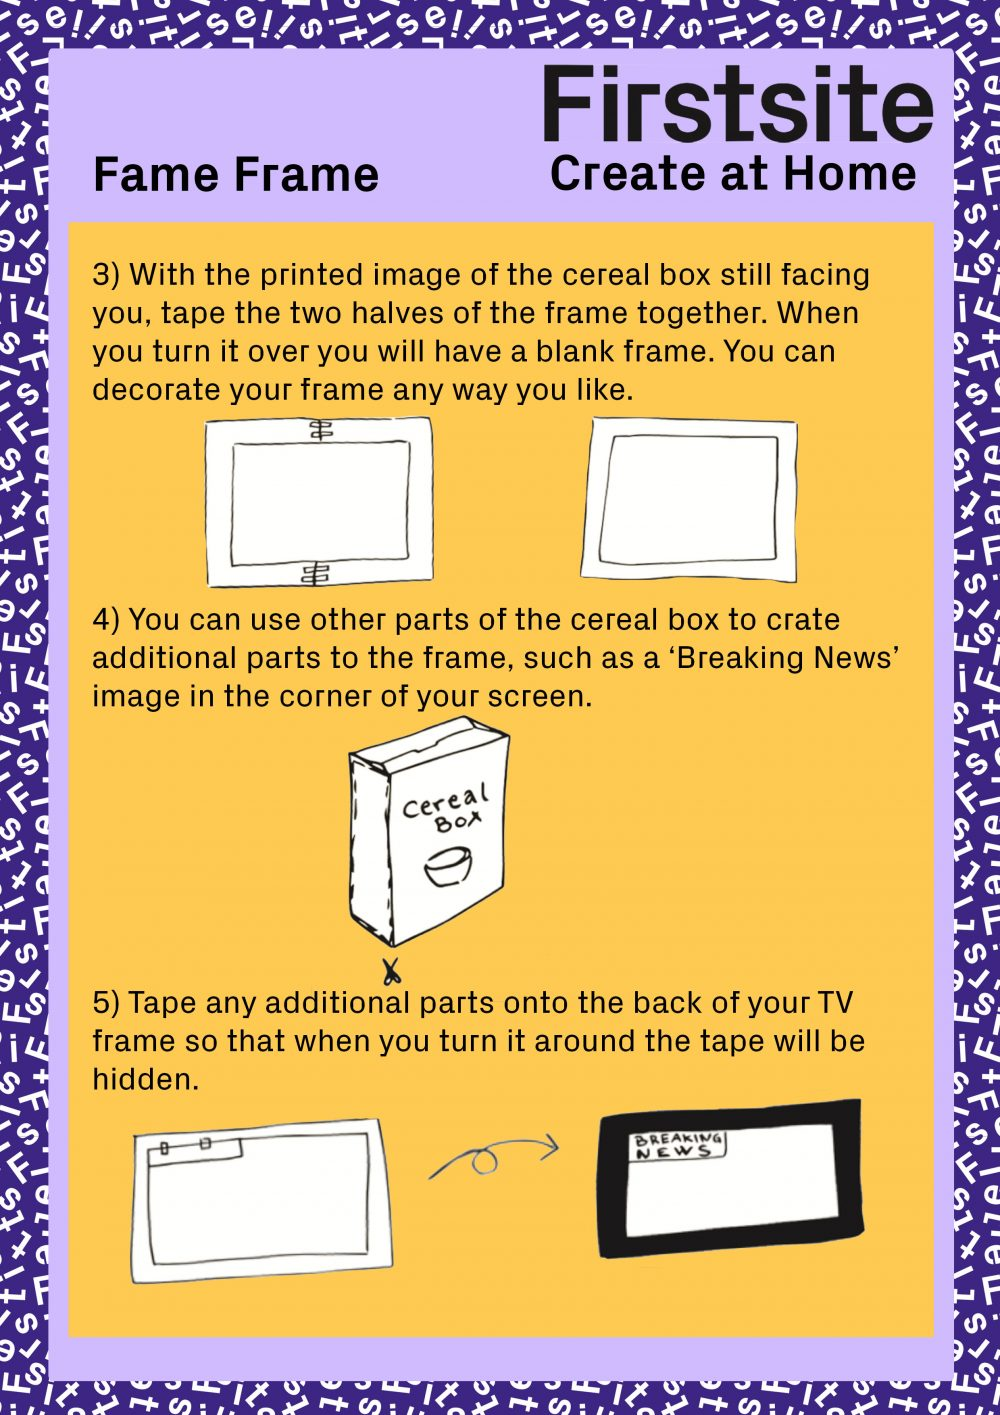 Firstsite Create at Home Fame Frame activity instructions pg 3 of 3